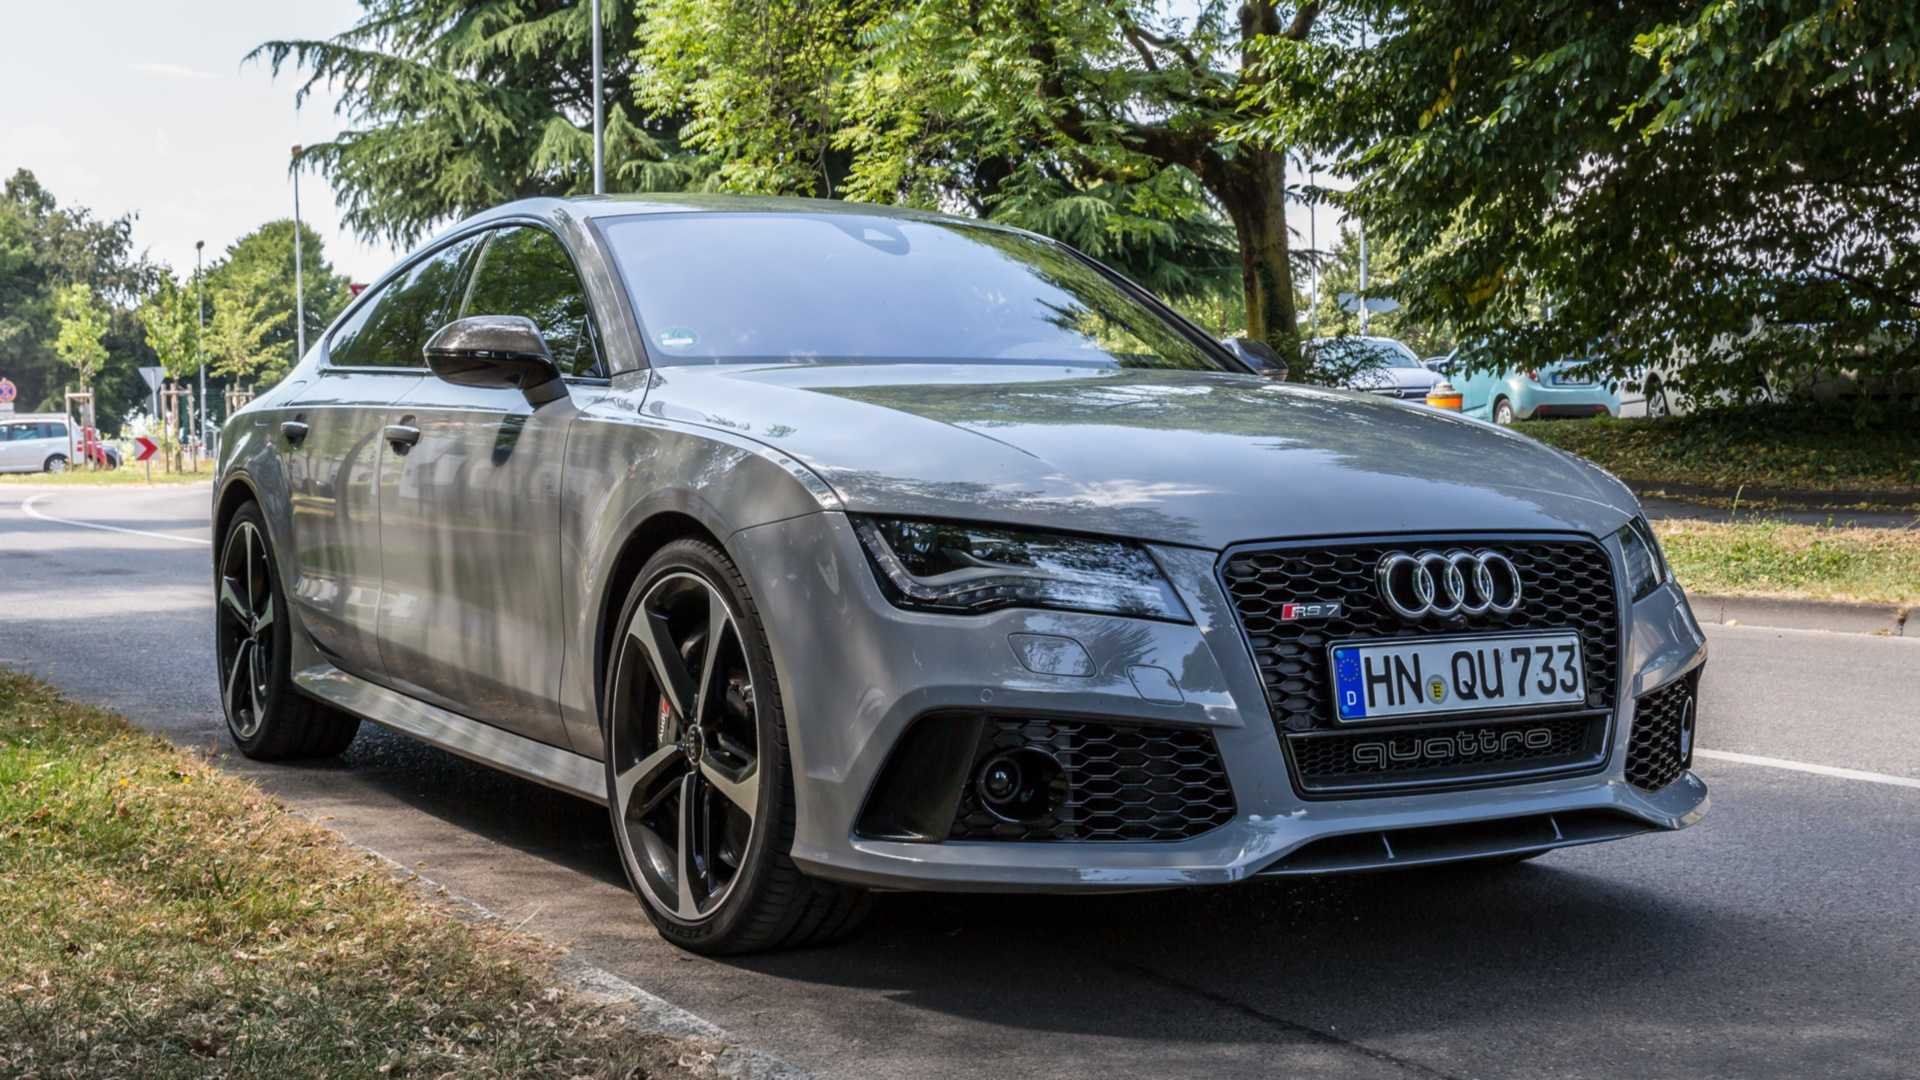 Audi RS7 Full HD Wallpaper and Background Image ...